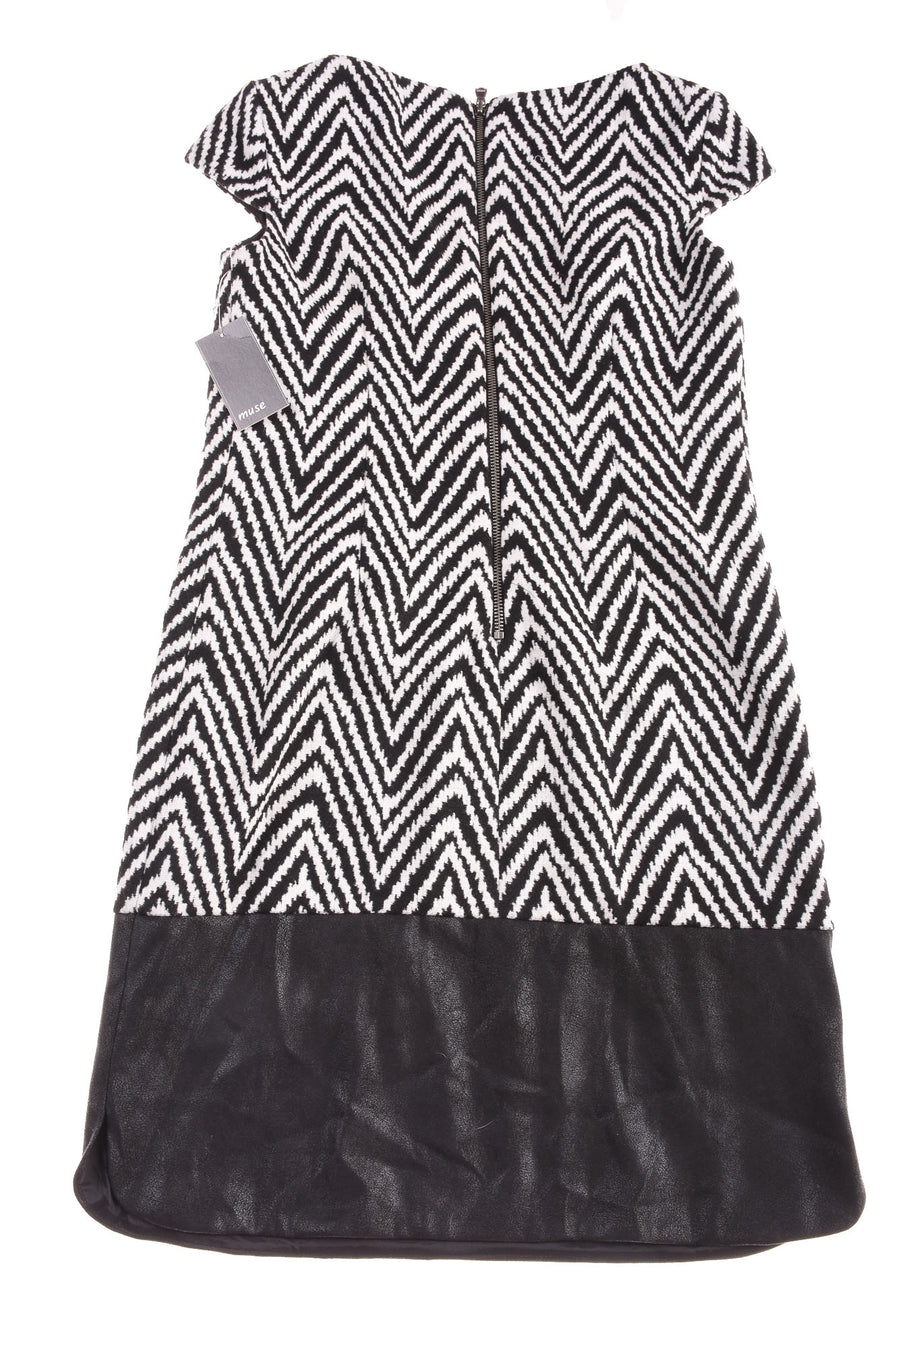 NEW Muse Women's Dress 2 Black & White